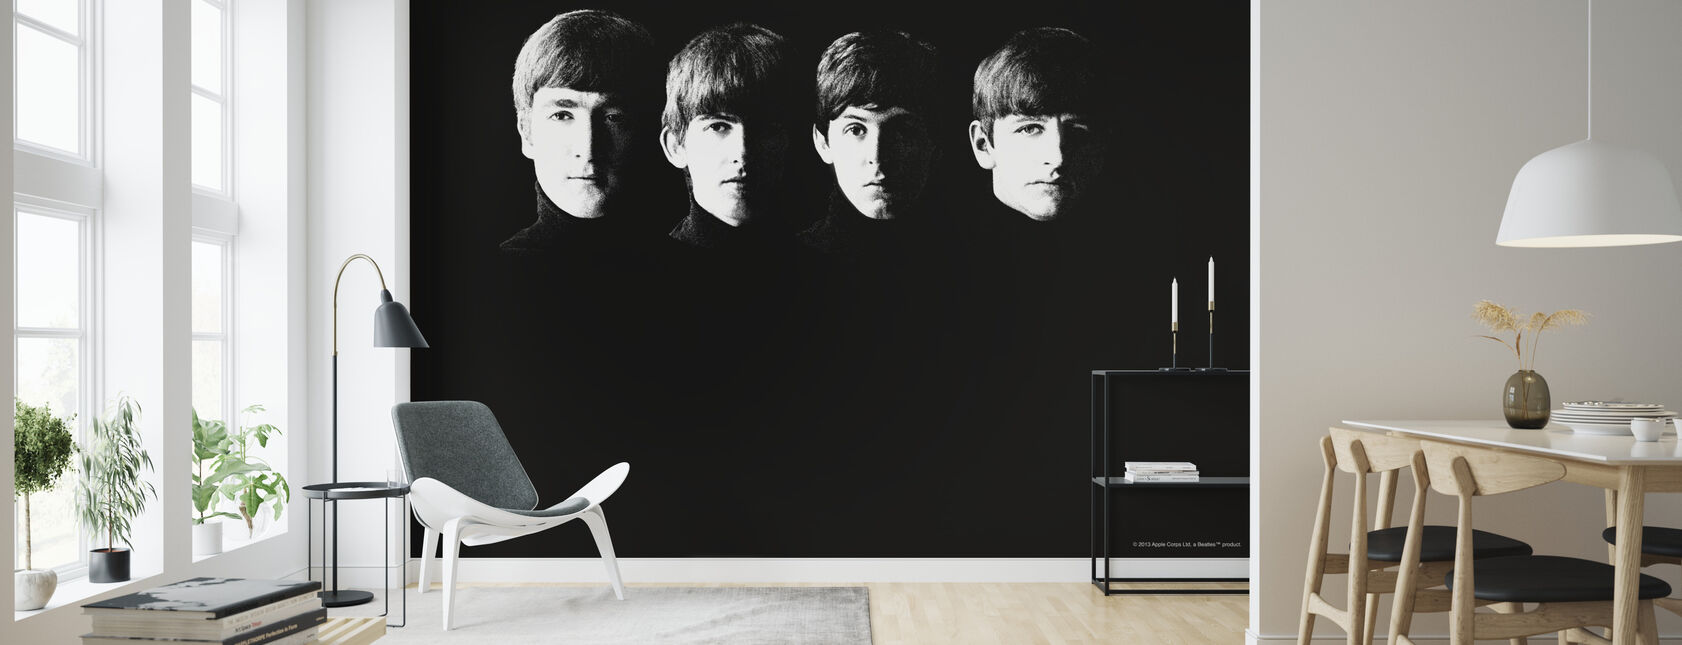 Beatles - Grainy - Wallpaper - Living Room